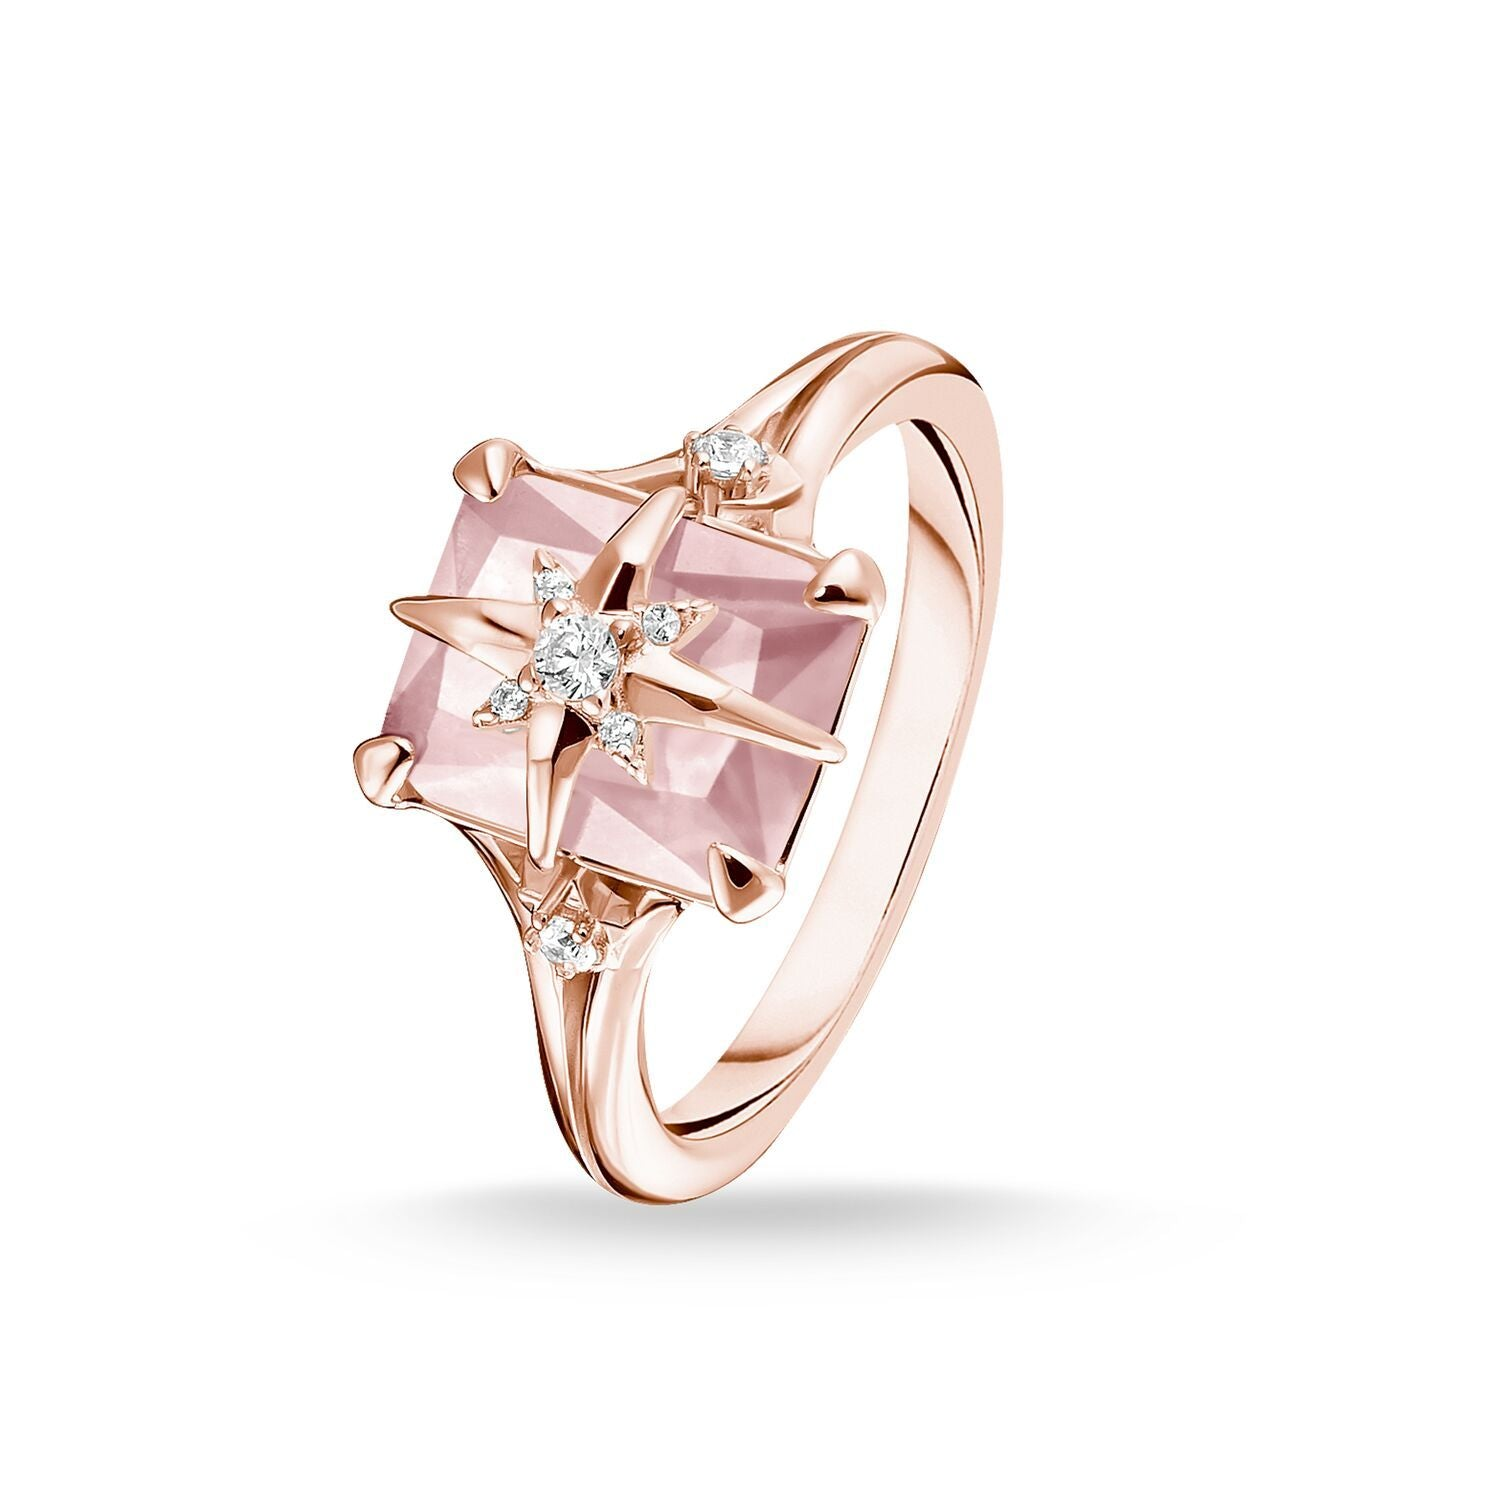 Large Pink Stones Ring with Star